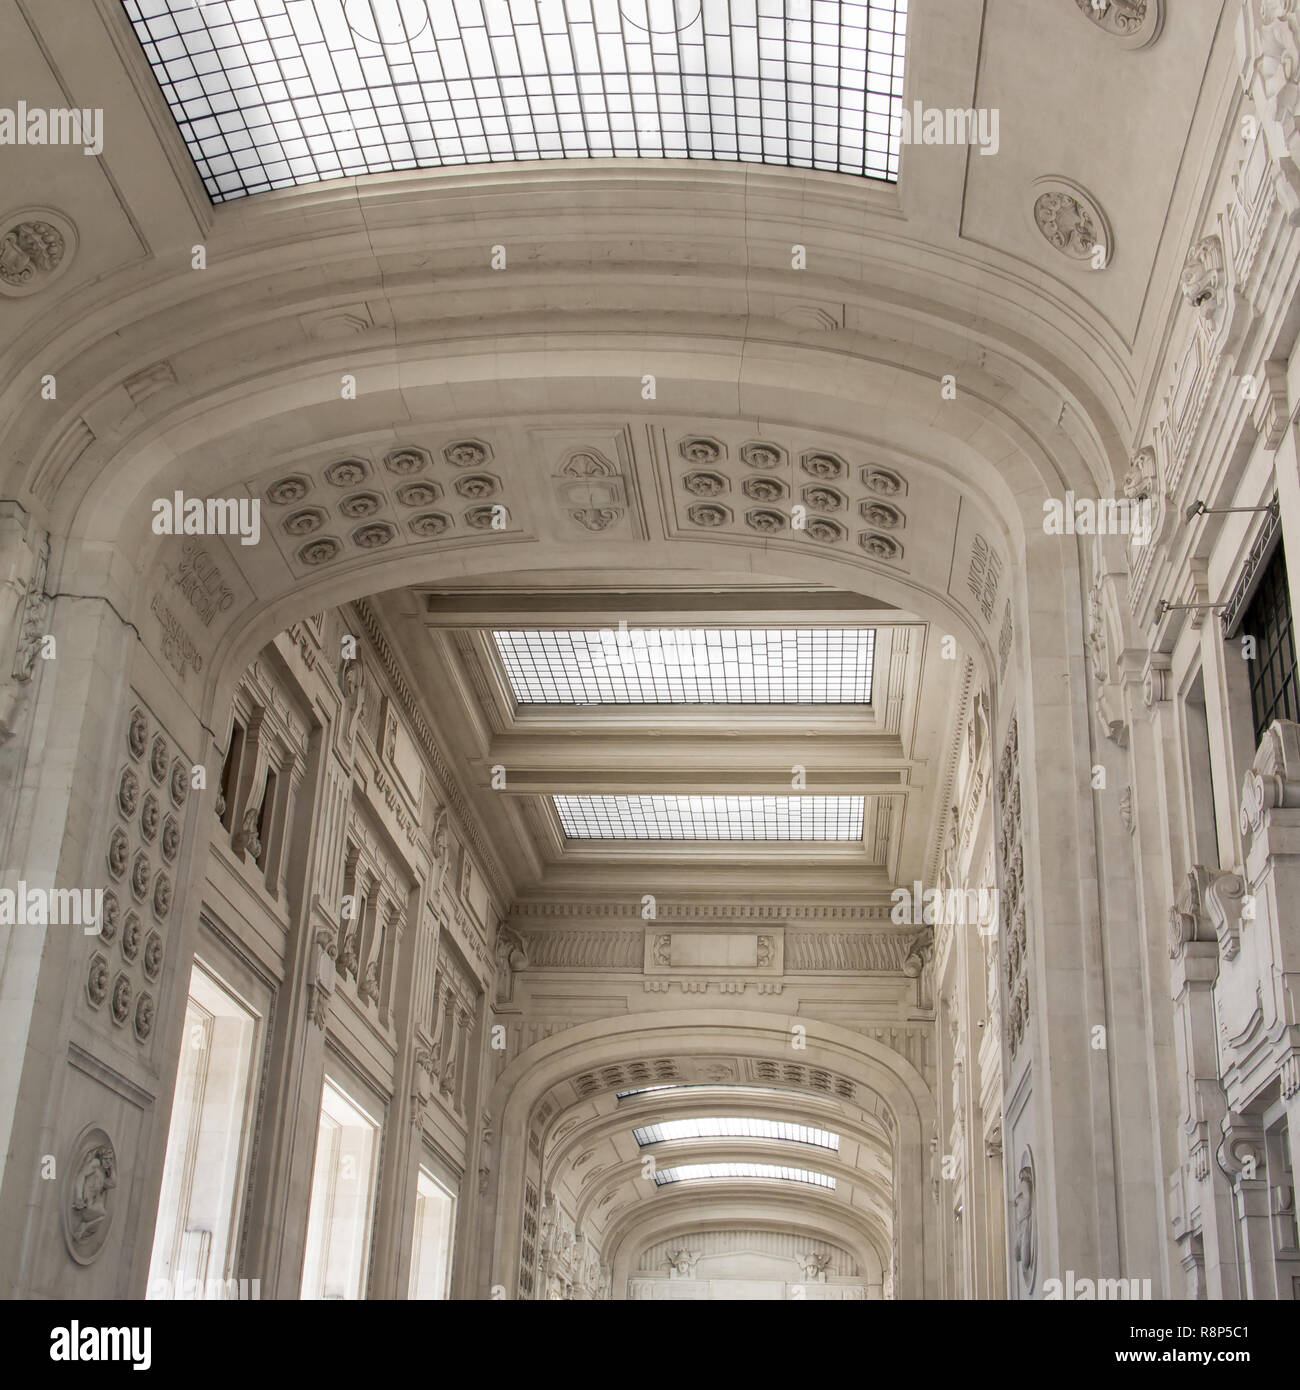 Ceiling of central station Milano, Italy - Stock Image